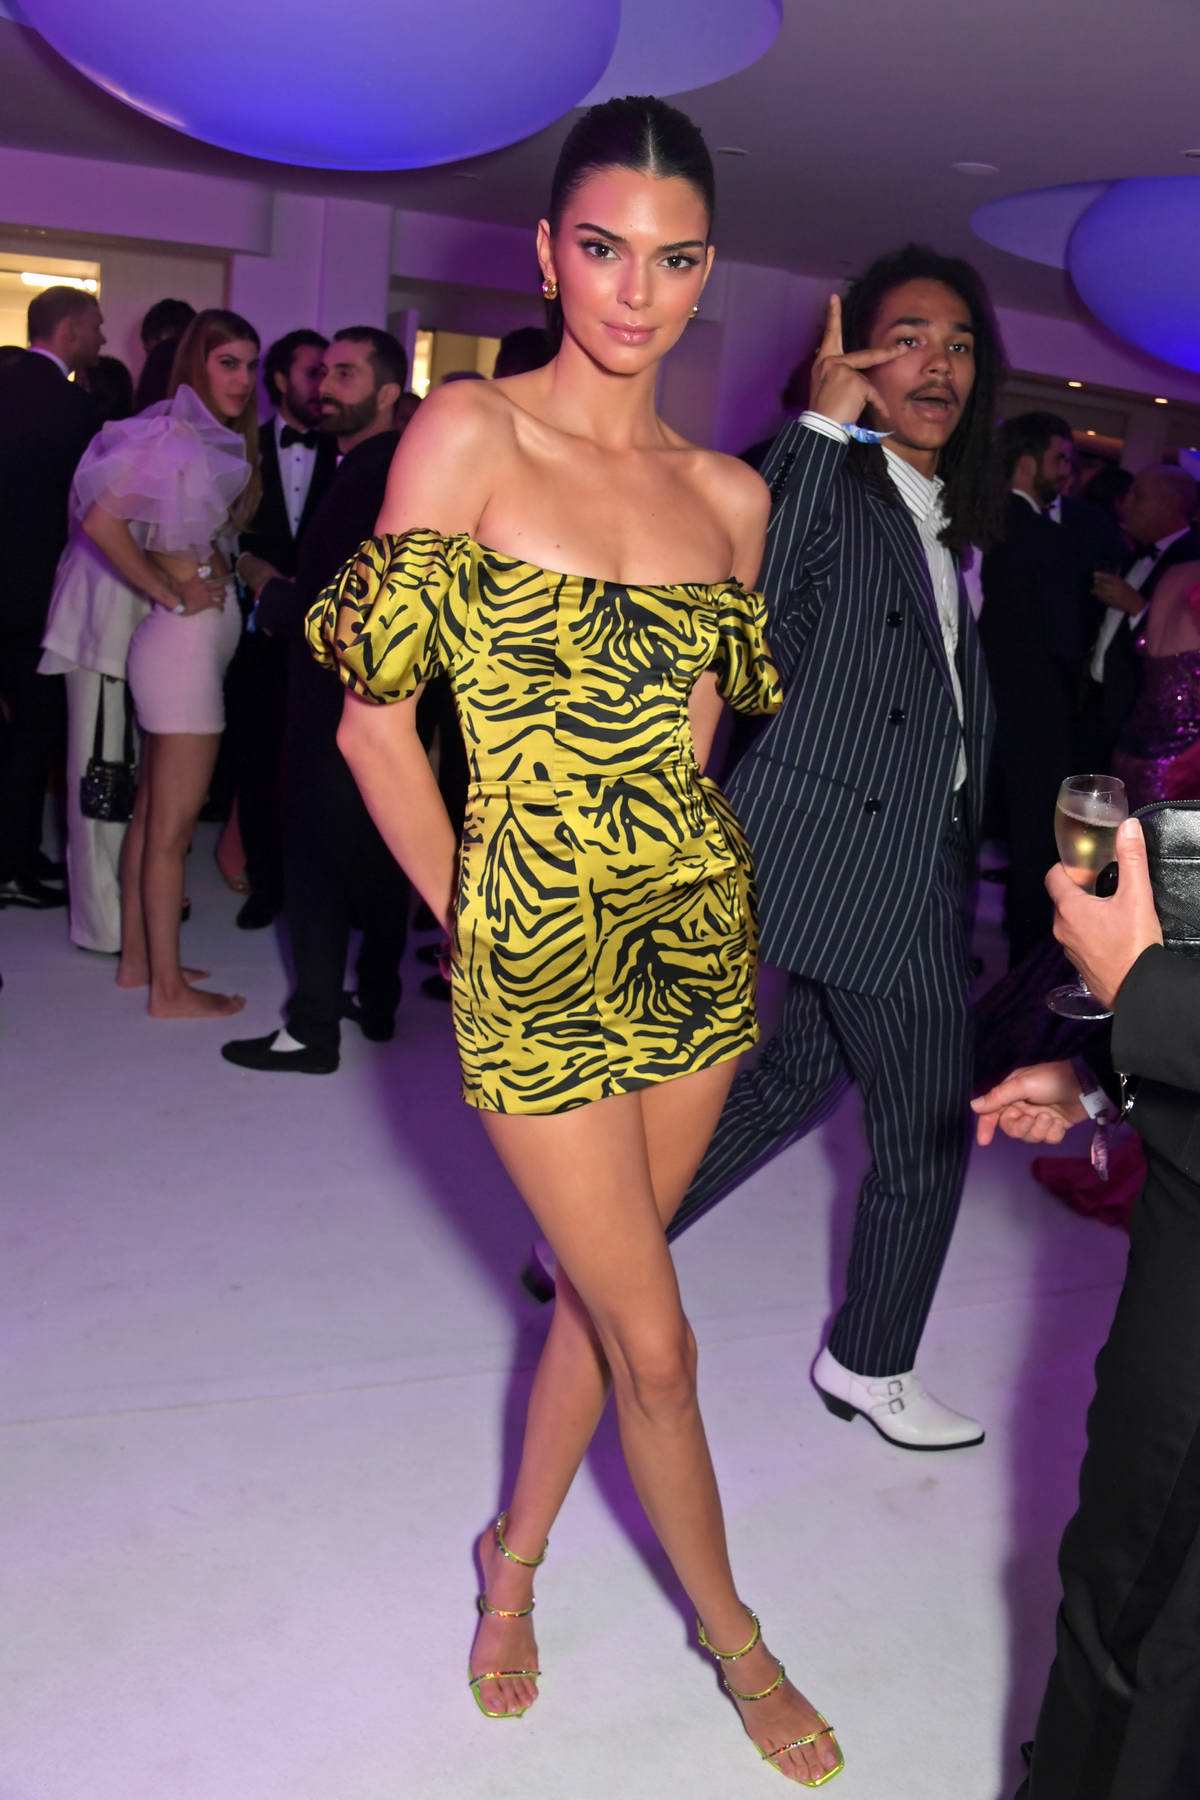 Kendall Jenner attends the amfAR Cannes Gala 2019 after party at Hotel du Cap-Eden-Roc in Cap d'Antibes, France